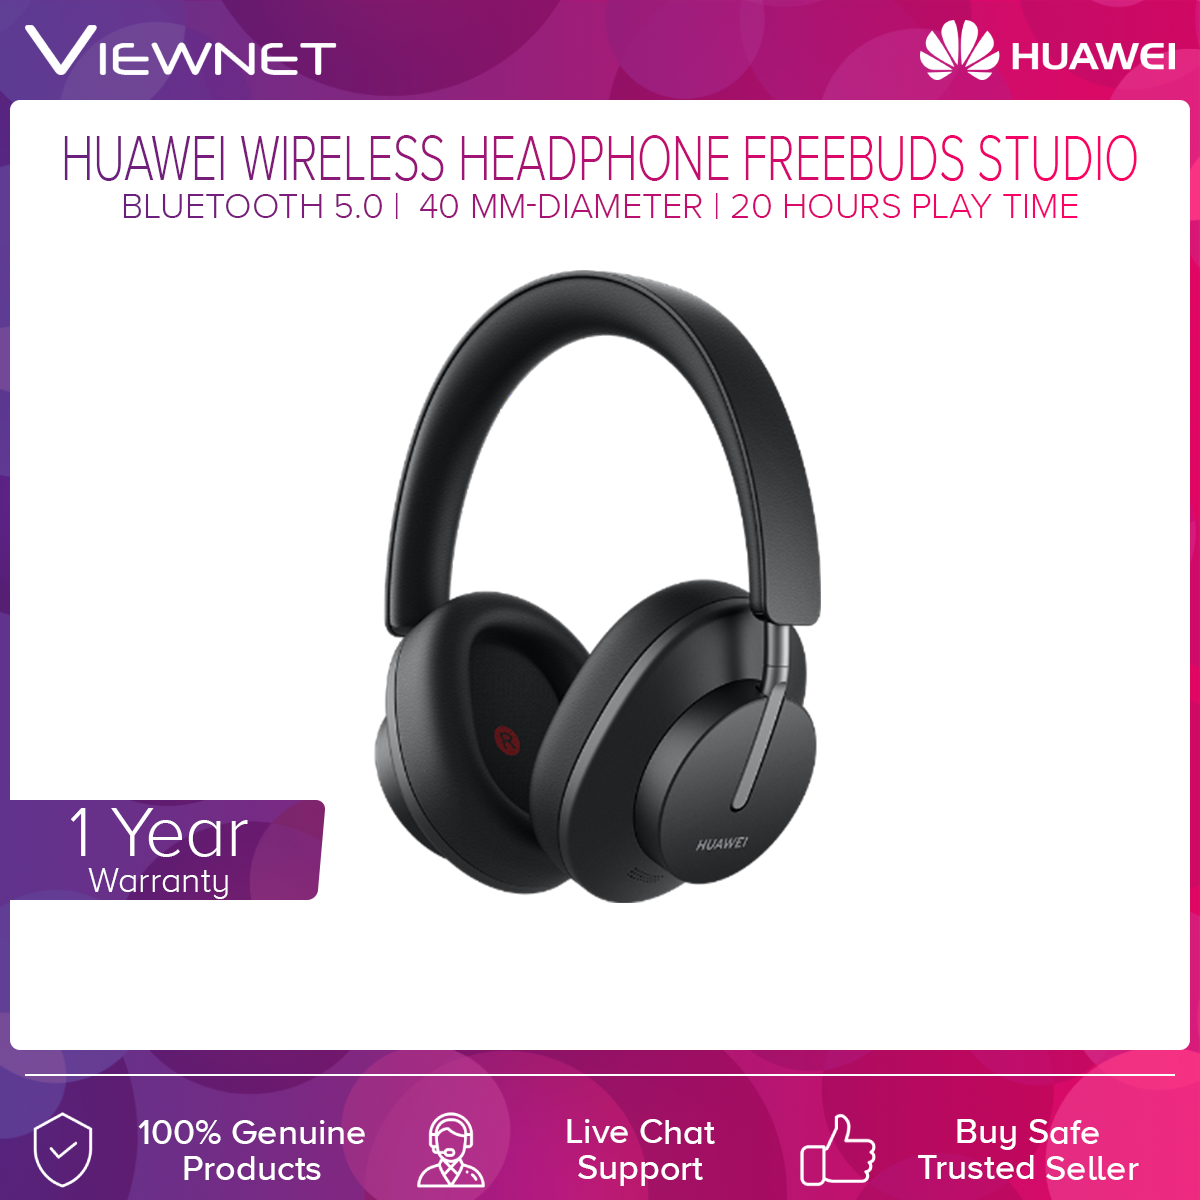 Huawei FreeBuds Studio Wireless Headphone with Bluetooth 5.0, 40 mm-Diameter, 20 Hours Play Time, High Resolution Music, Quick Charge, Smart Control